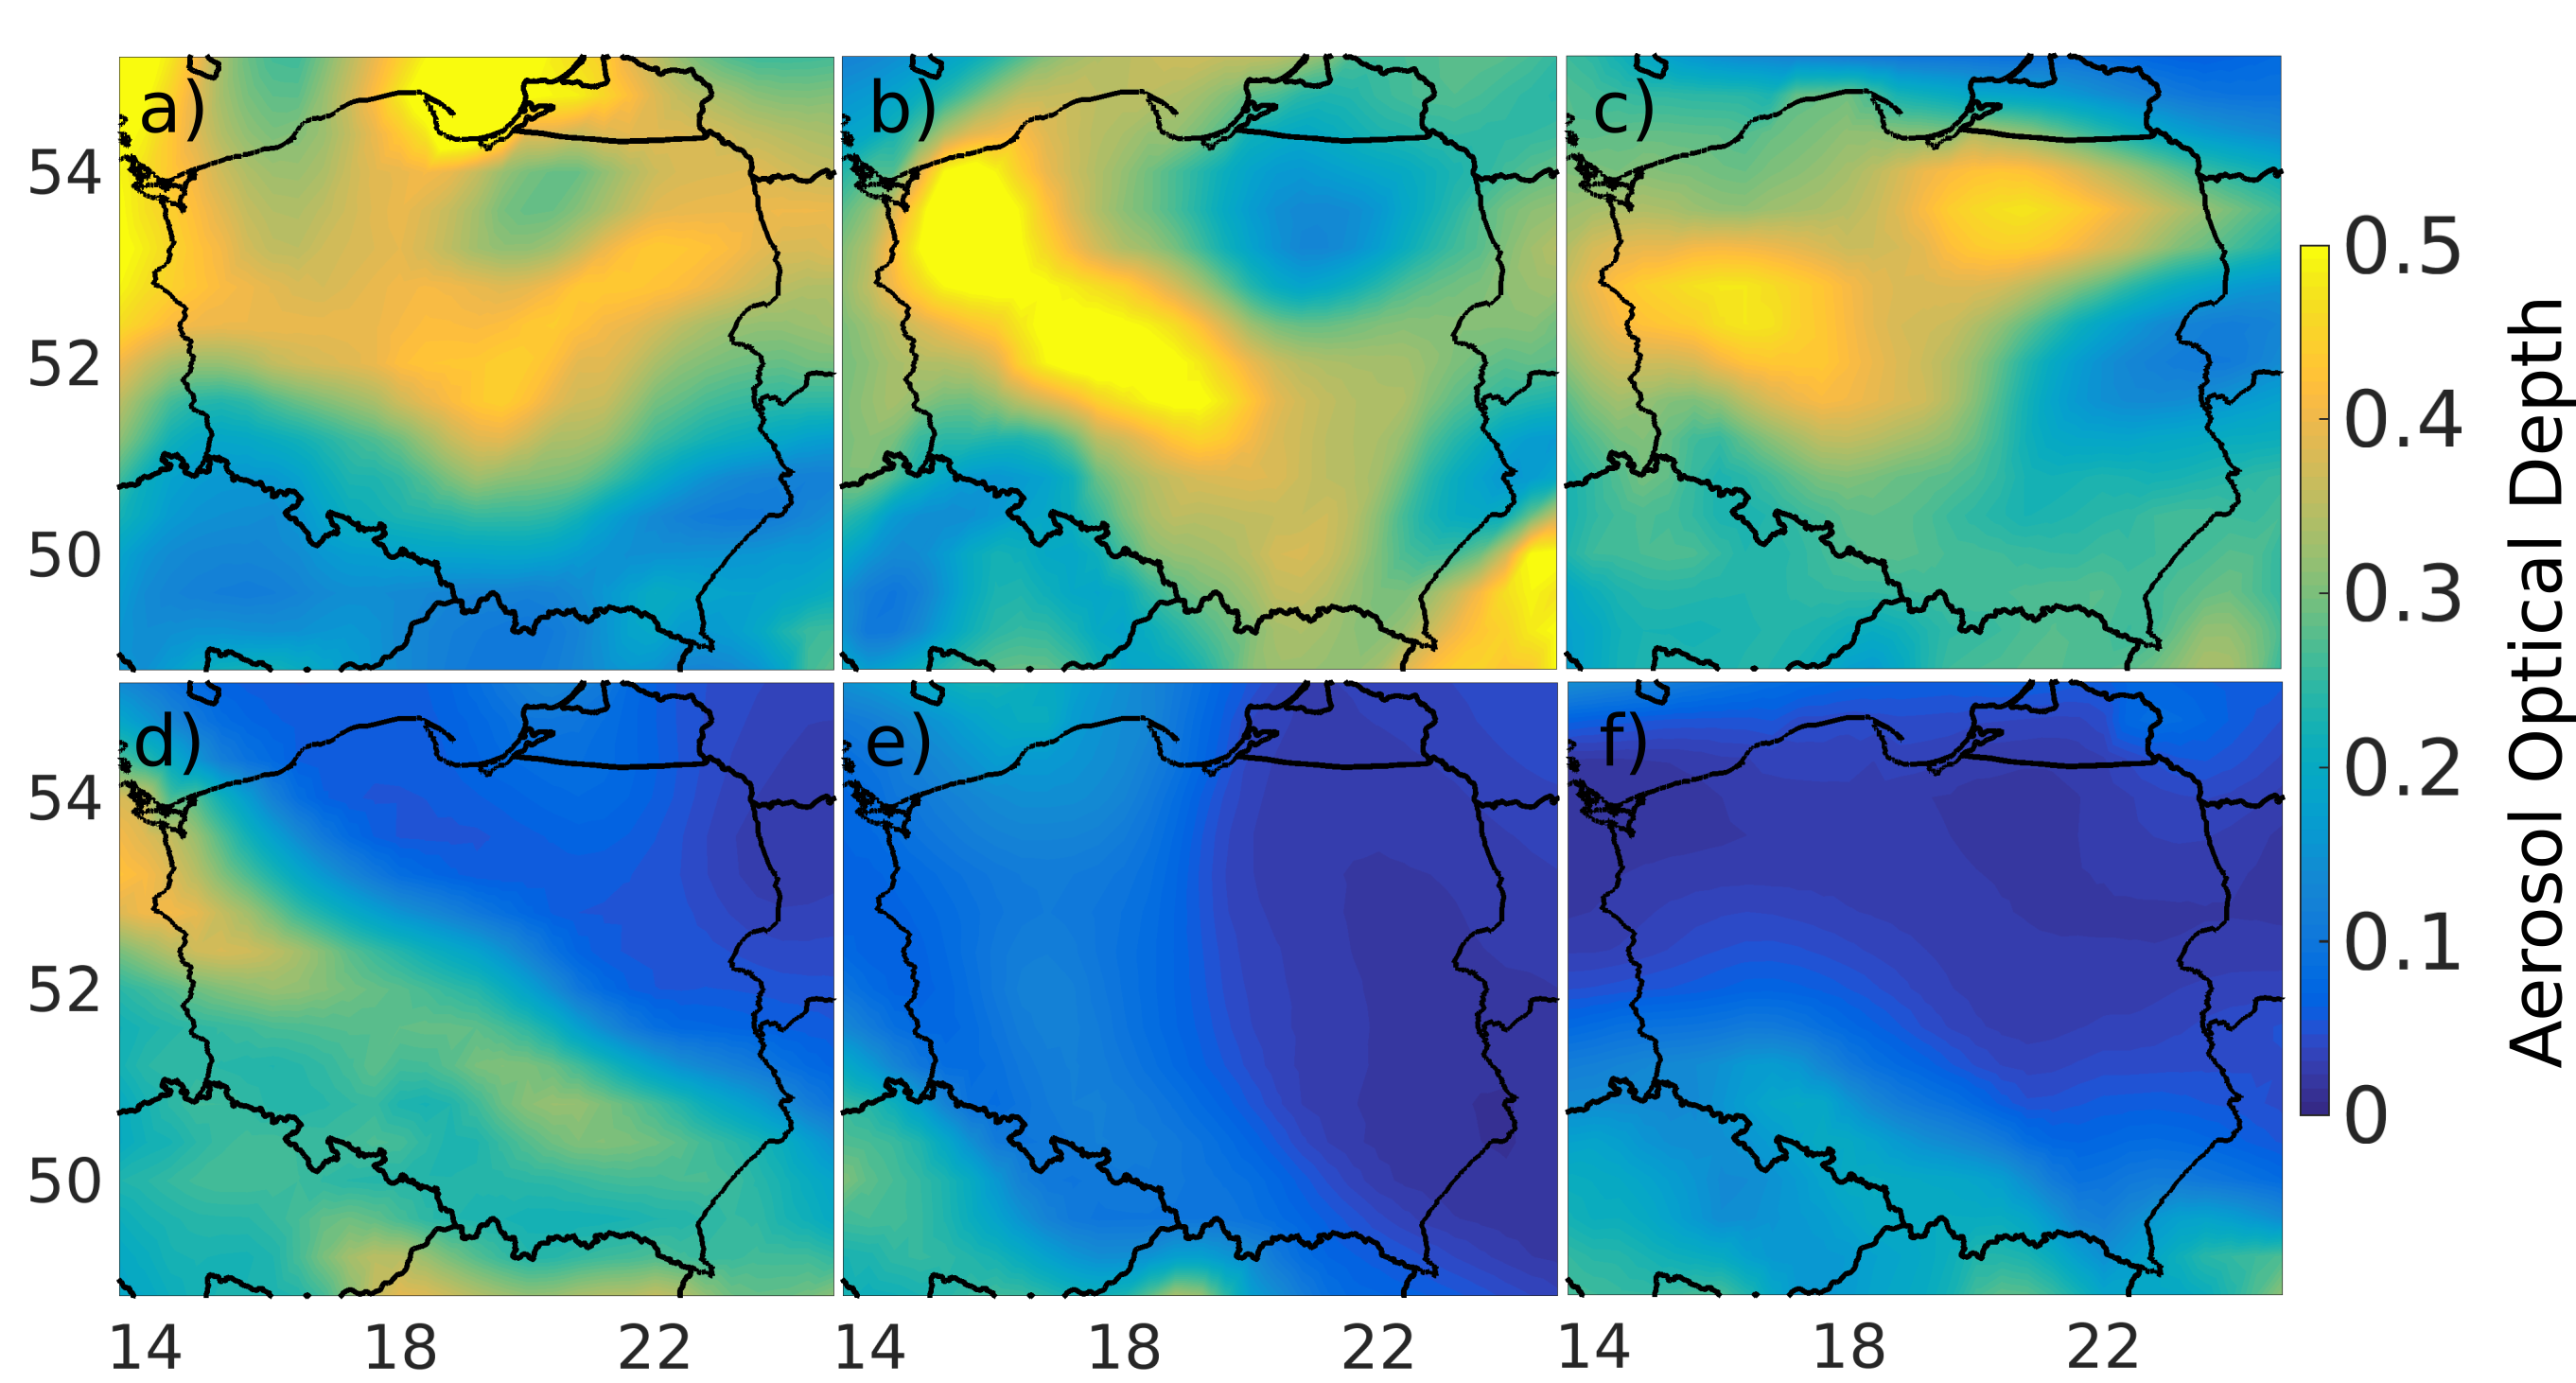 Fig. 2: Aerosol optical depth at 550nm forecast by CAMS at 6:00 UTC on 11-16 September 2016, from upper left following rows (data source: http://atmosphere.copernicus.eu).